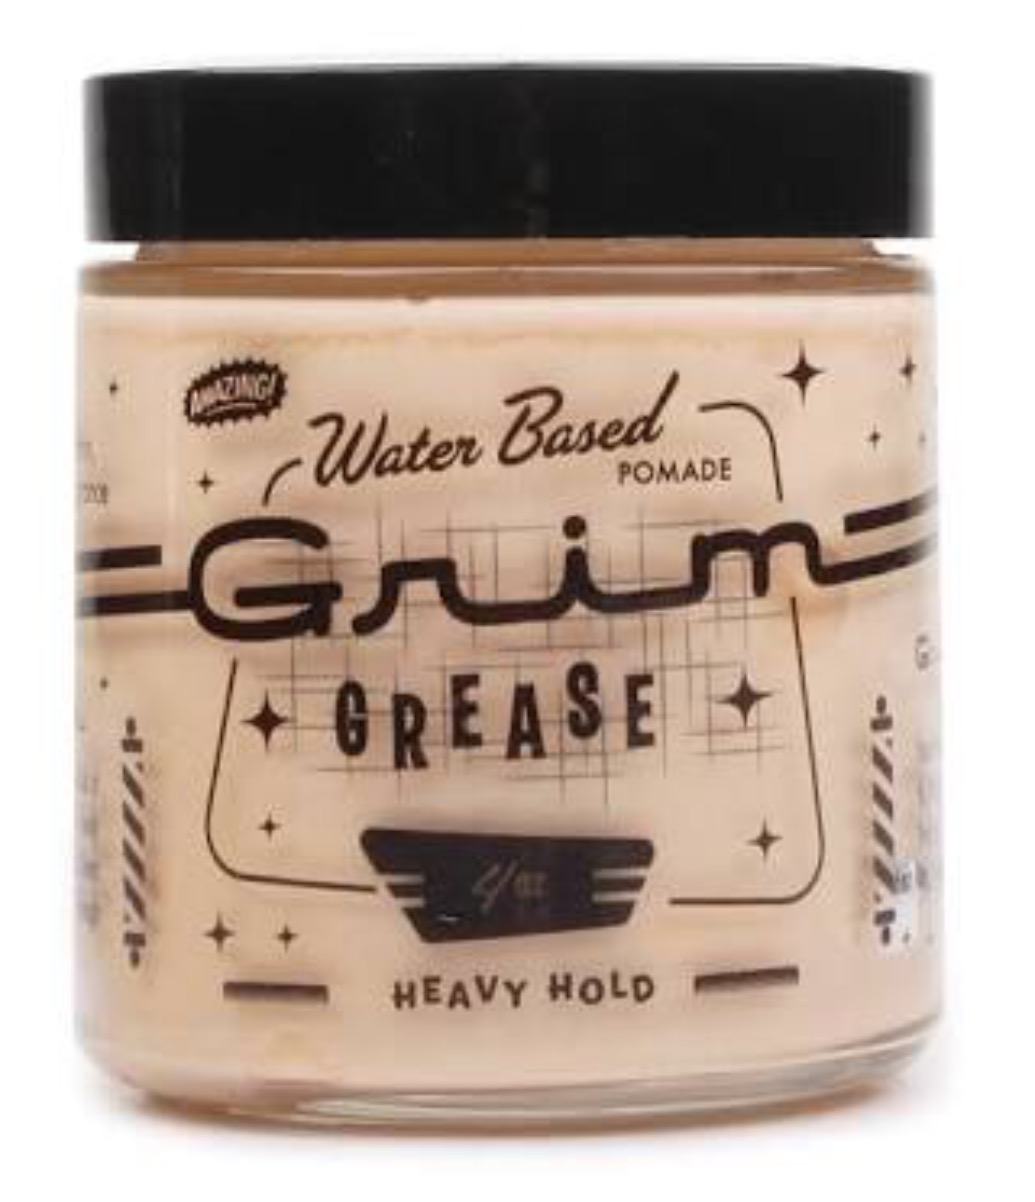 Grim Grease Pomade (Unorthodox Water-based Heavy Hold)